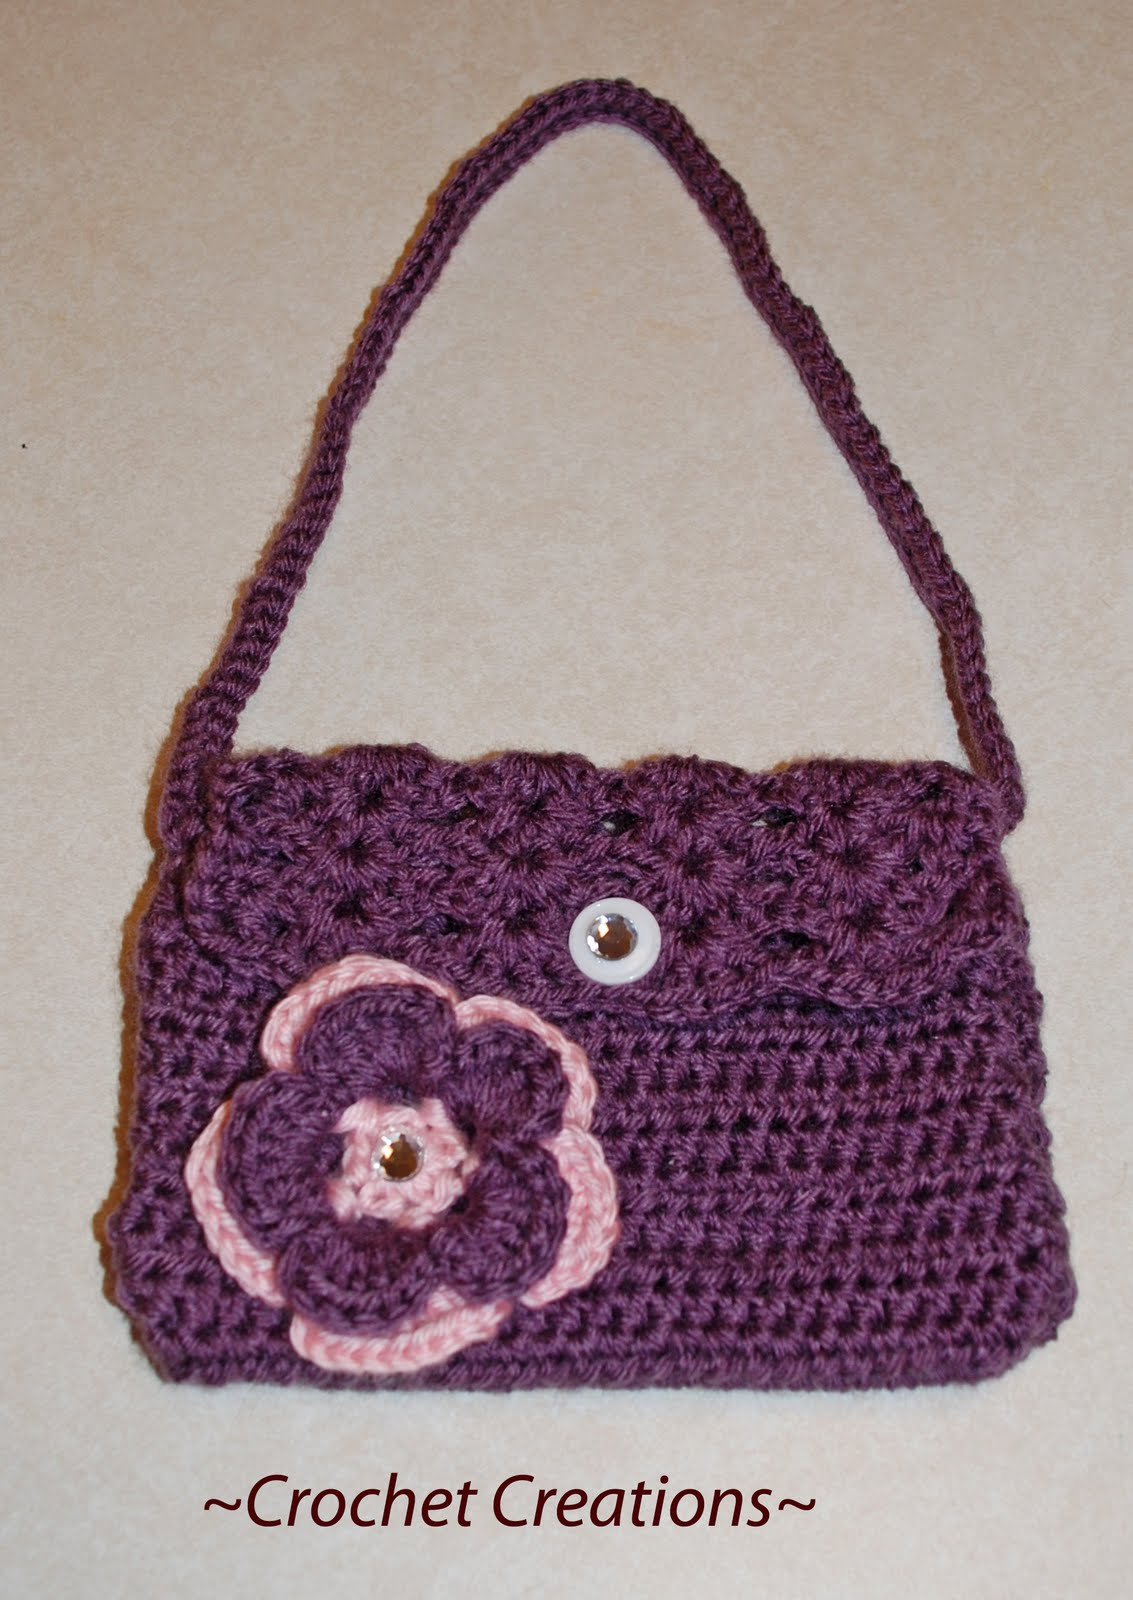 Crochet Purse For Child : Amys Crochet Creative Creations: Crochet Child Purse with a Flower